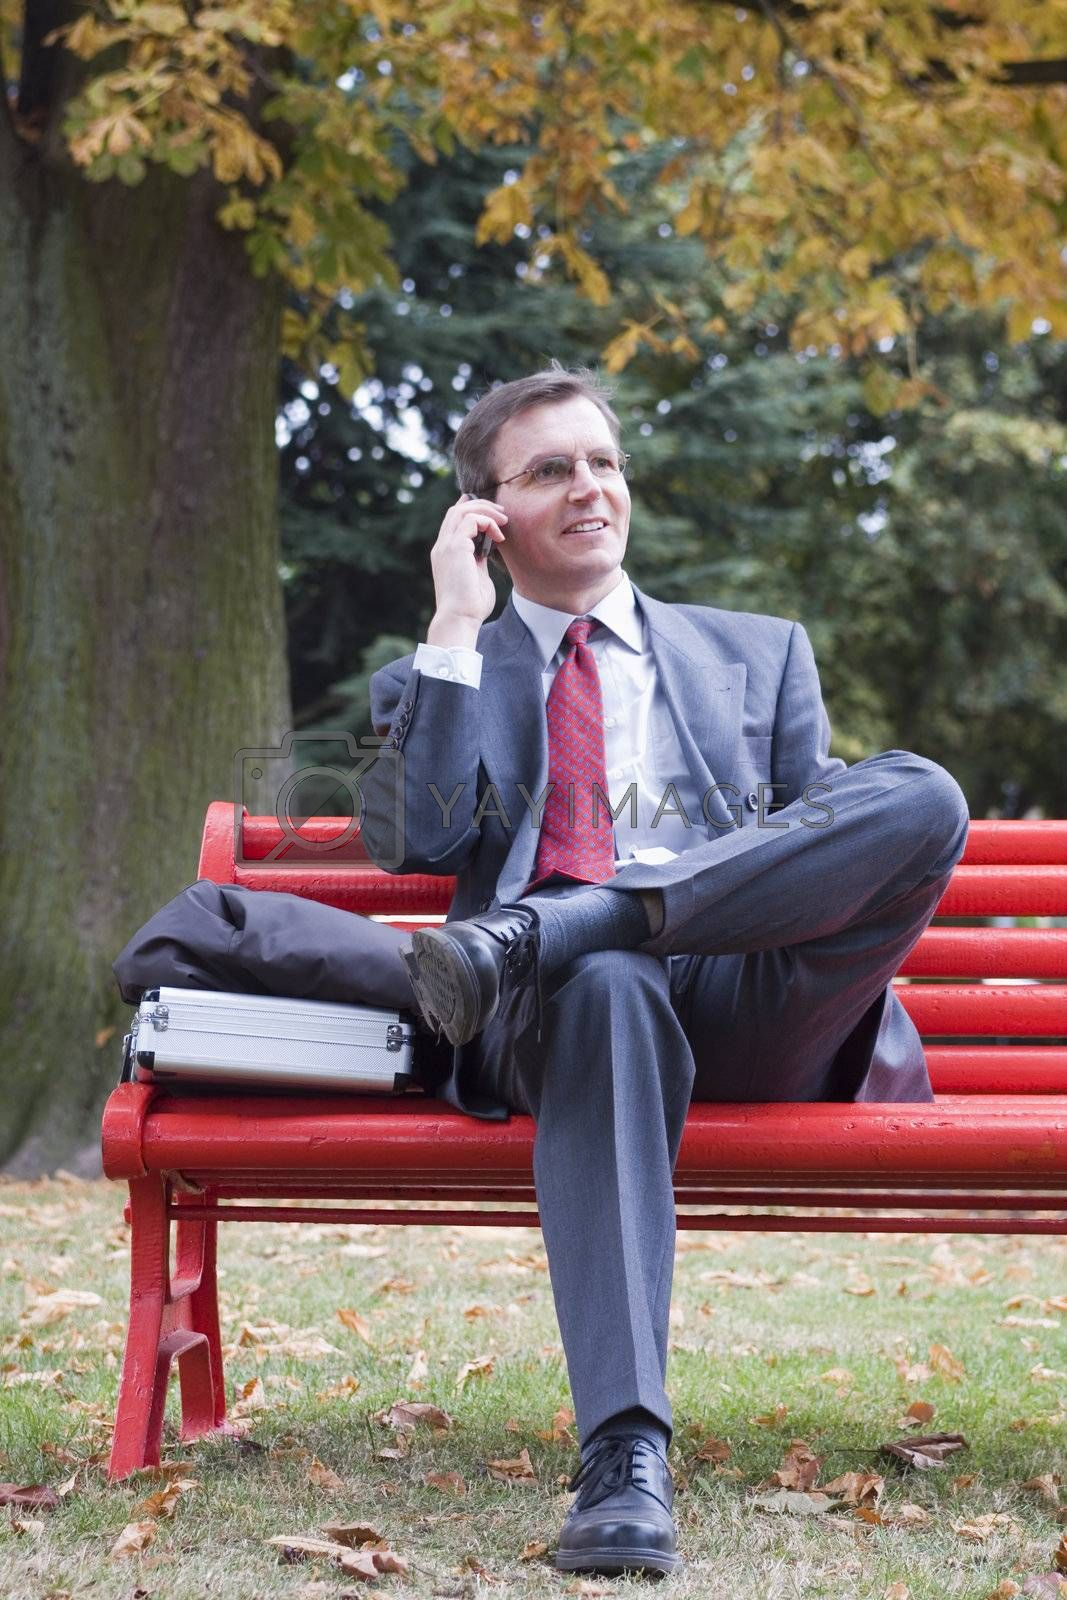 Businessman talking on cell phone while sitting on a red park bench